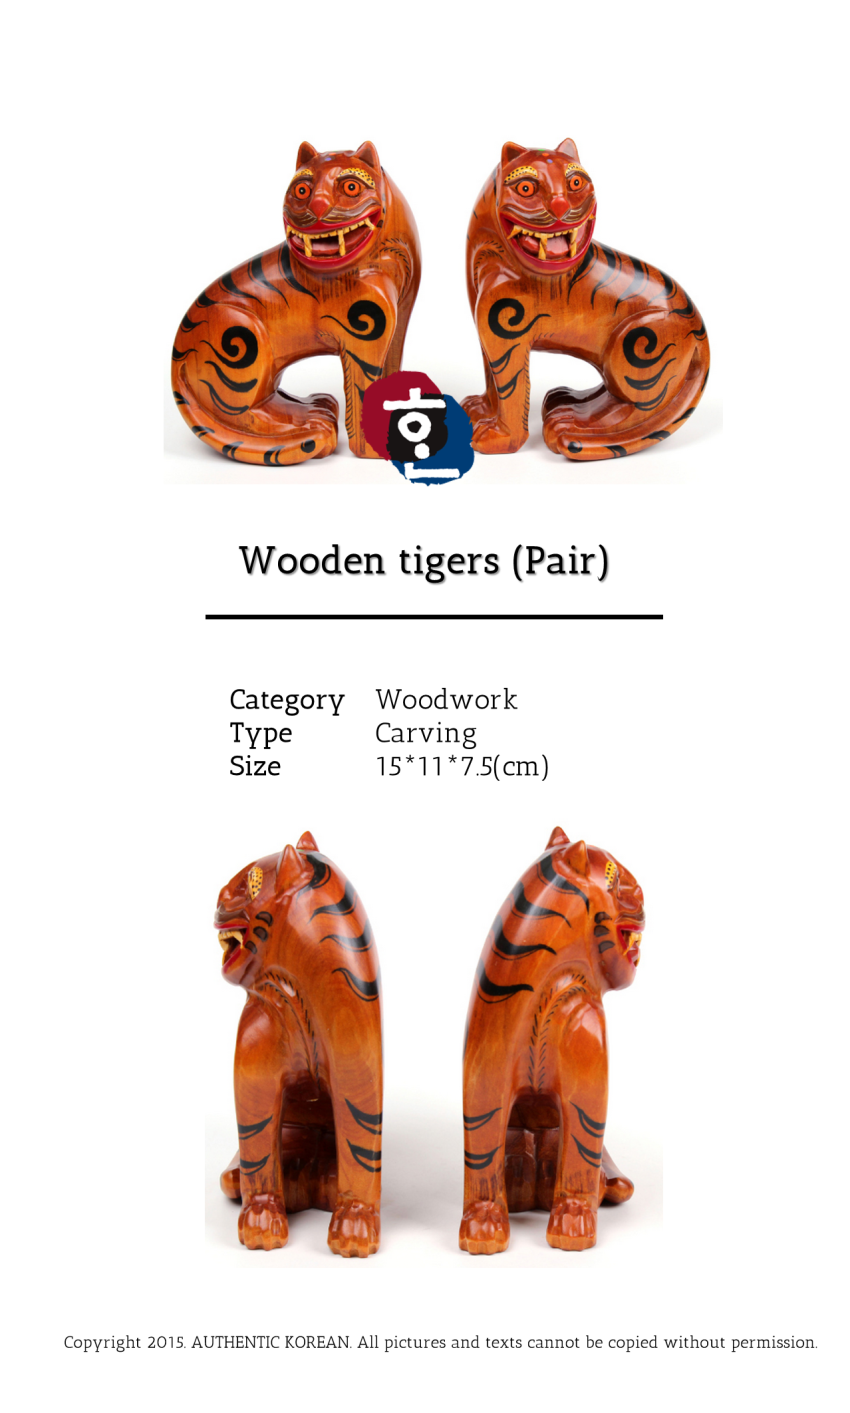 27-1 Wooden tigers (Pair)